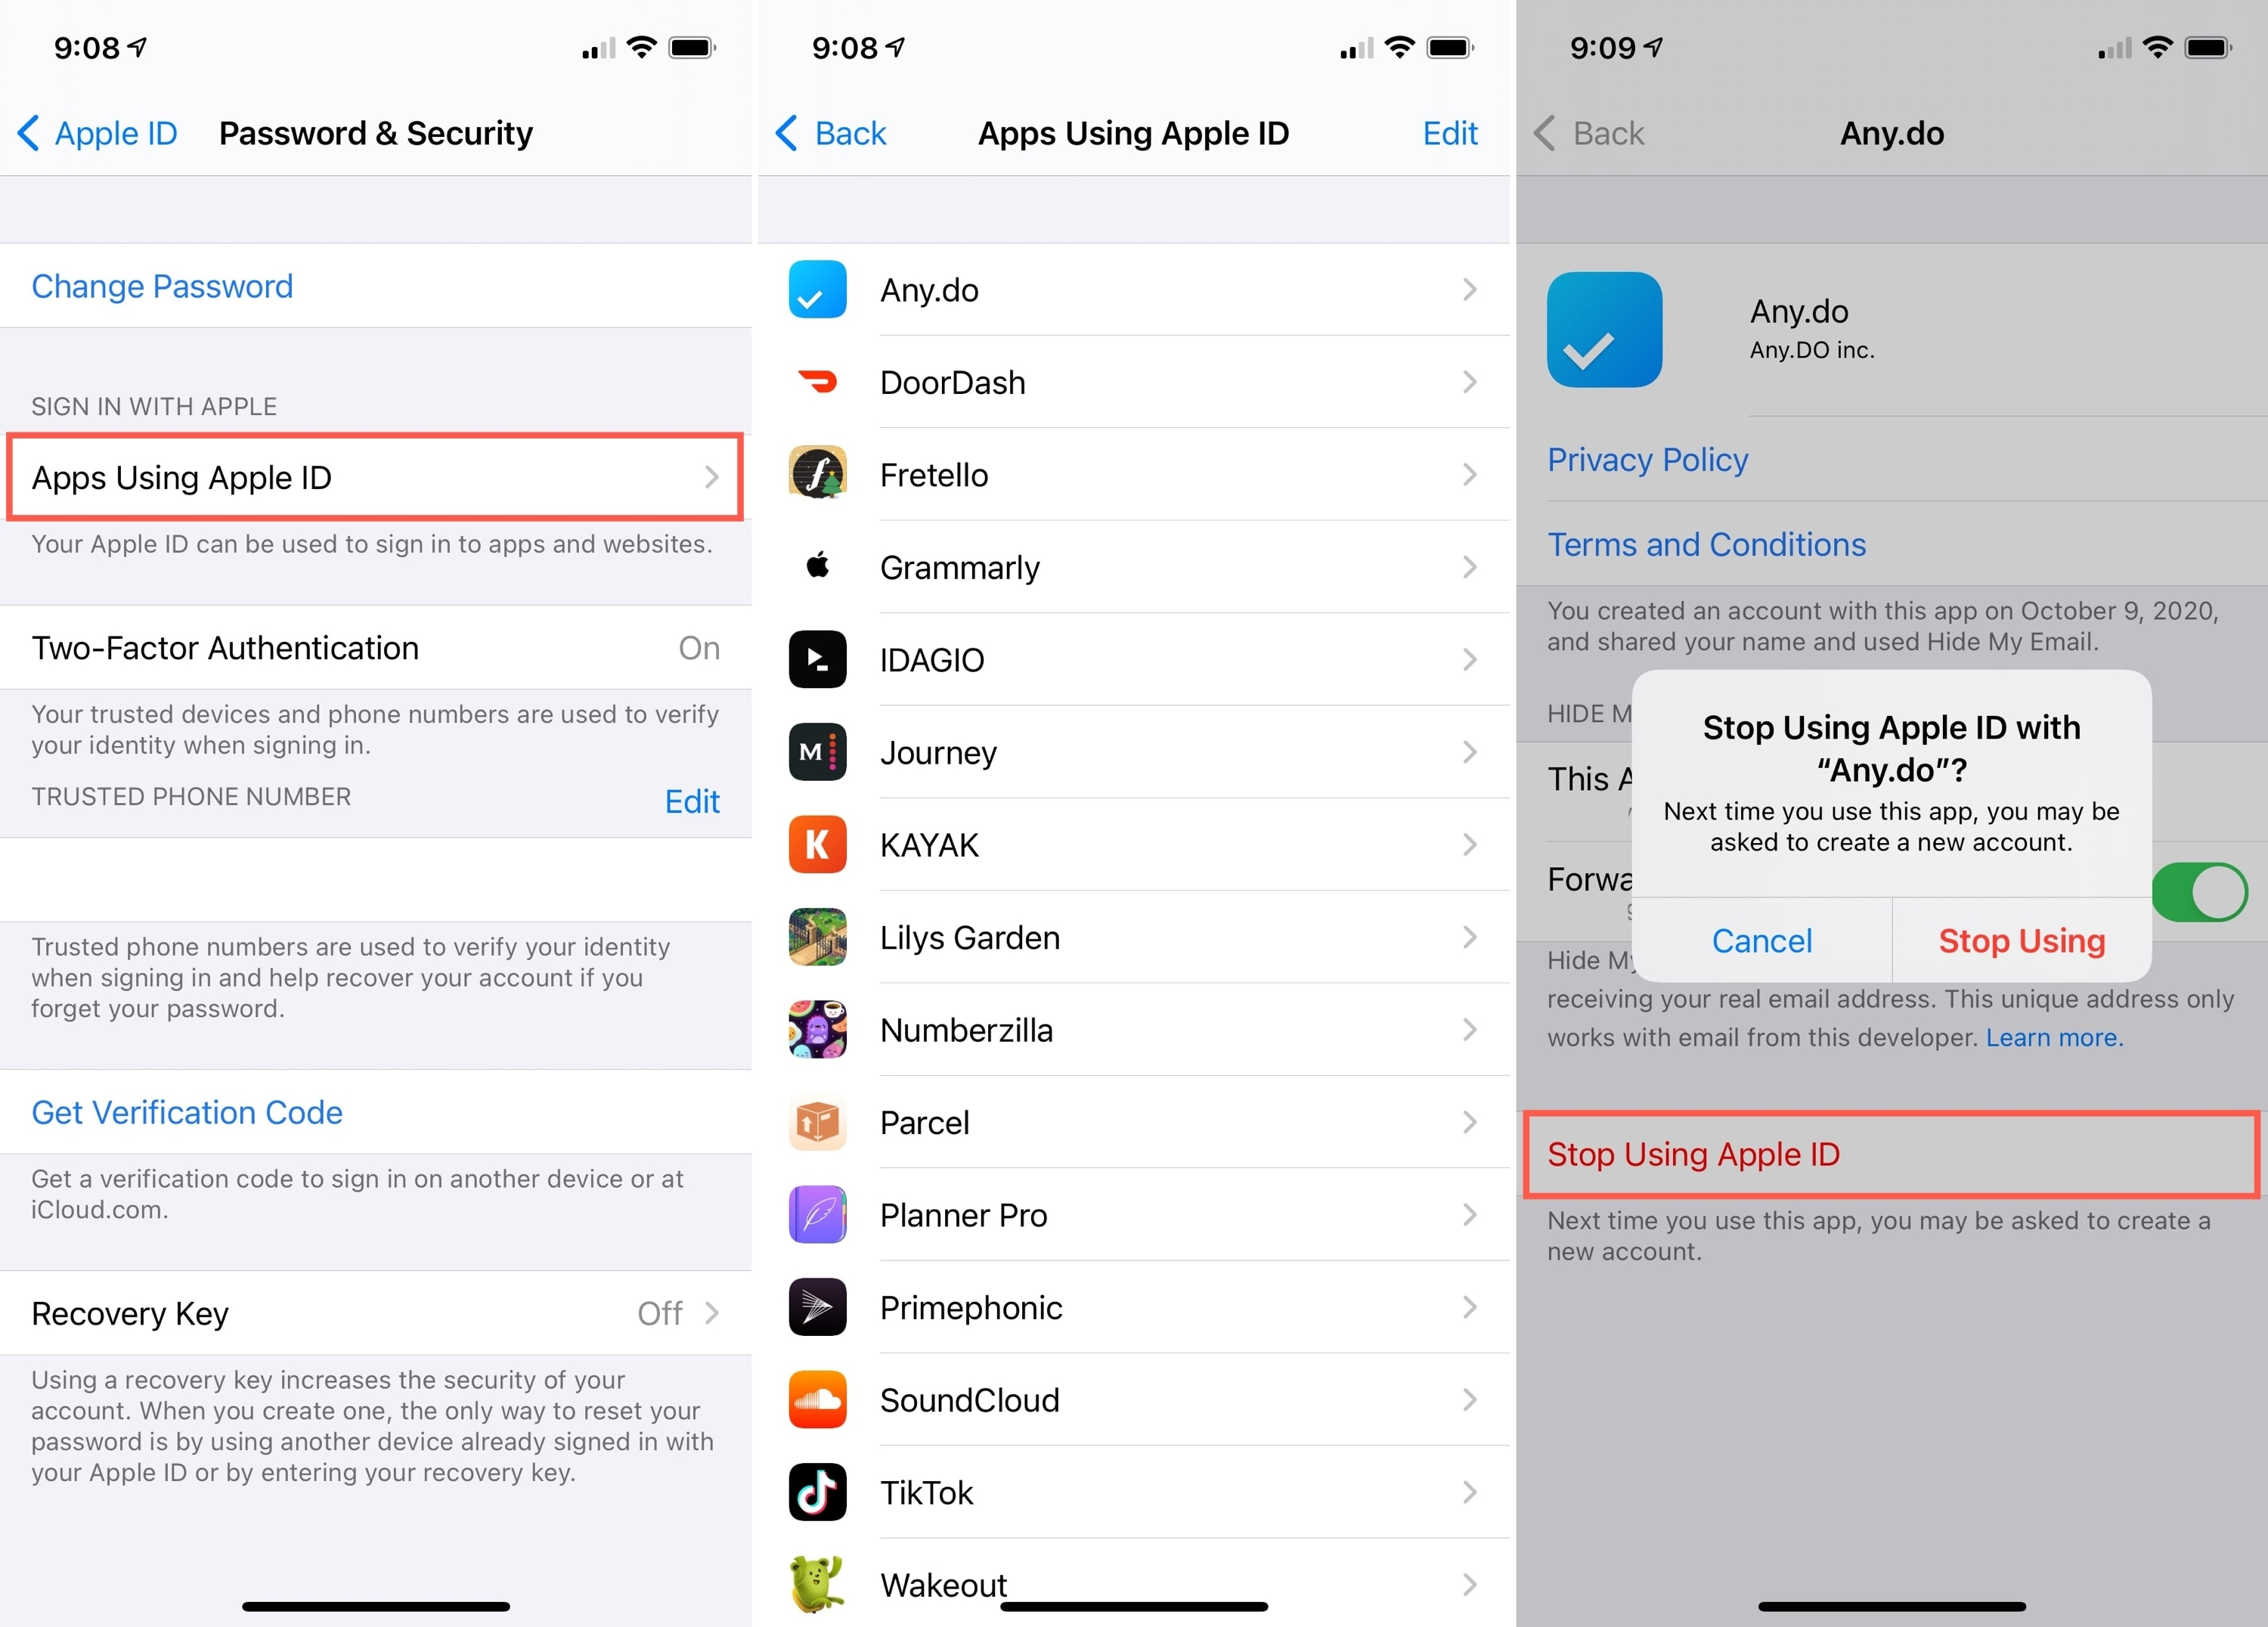 Apps Using Apple ID on iPhone